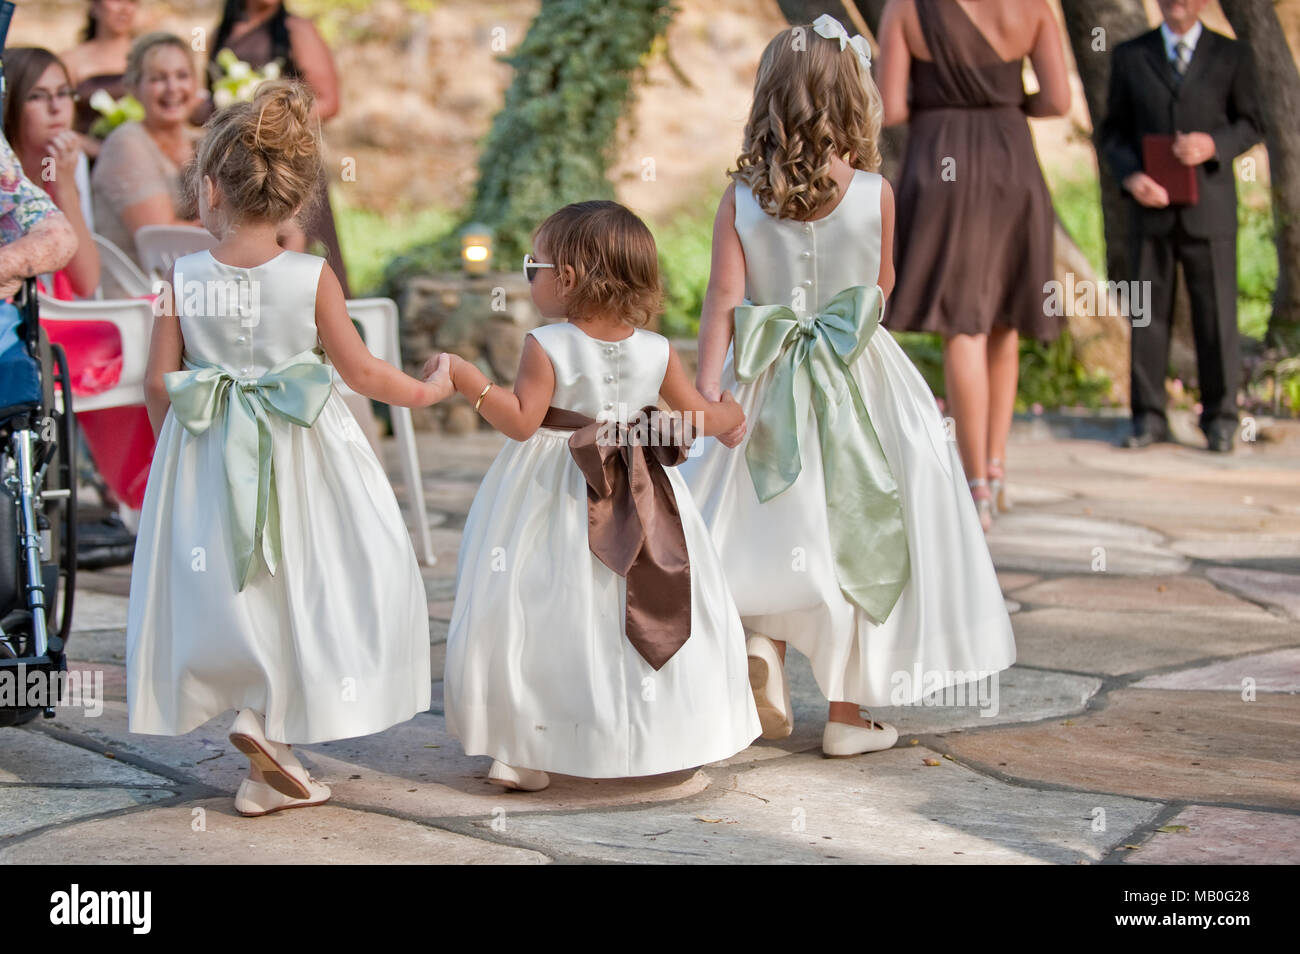 Three little cute girls holding hands and walking the aisle at an outdoor wedding at California - Stock Image